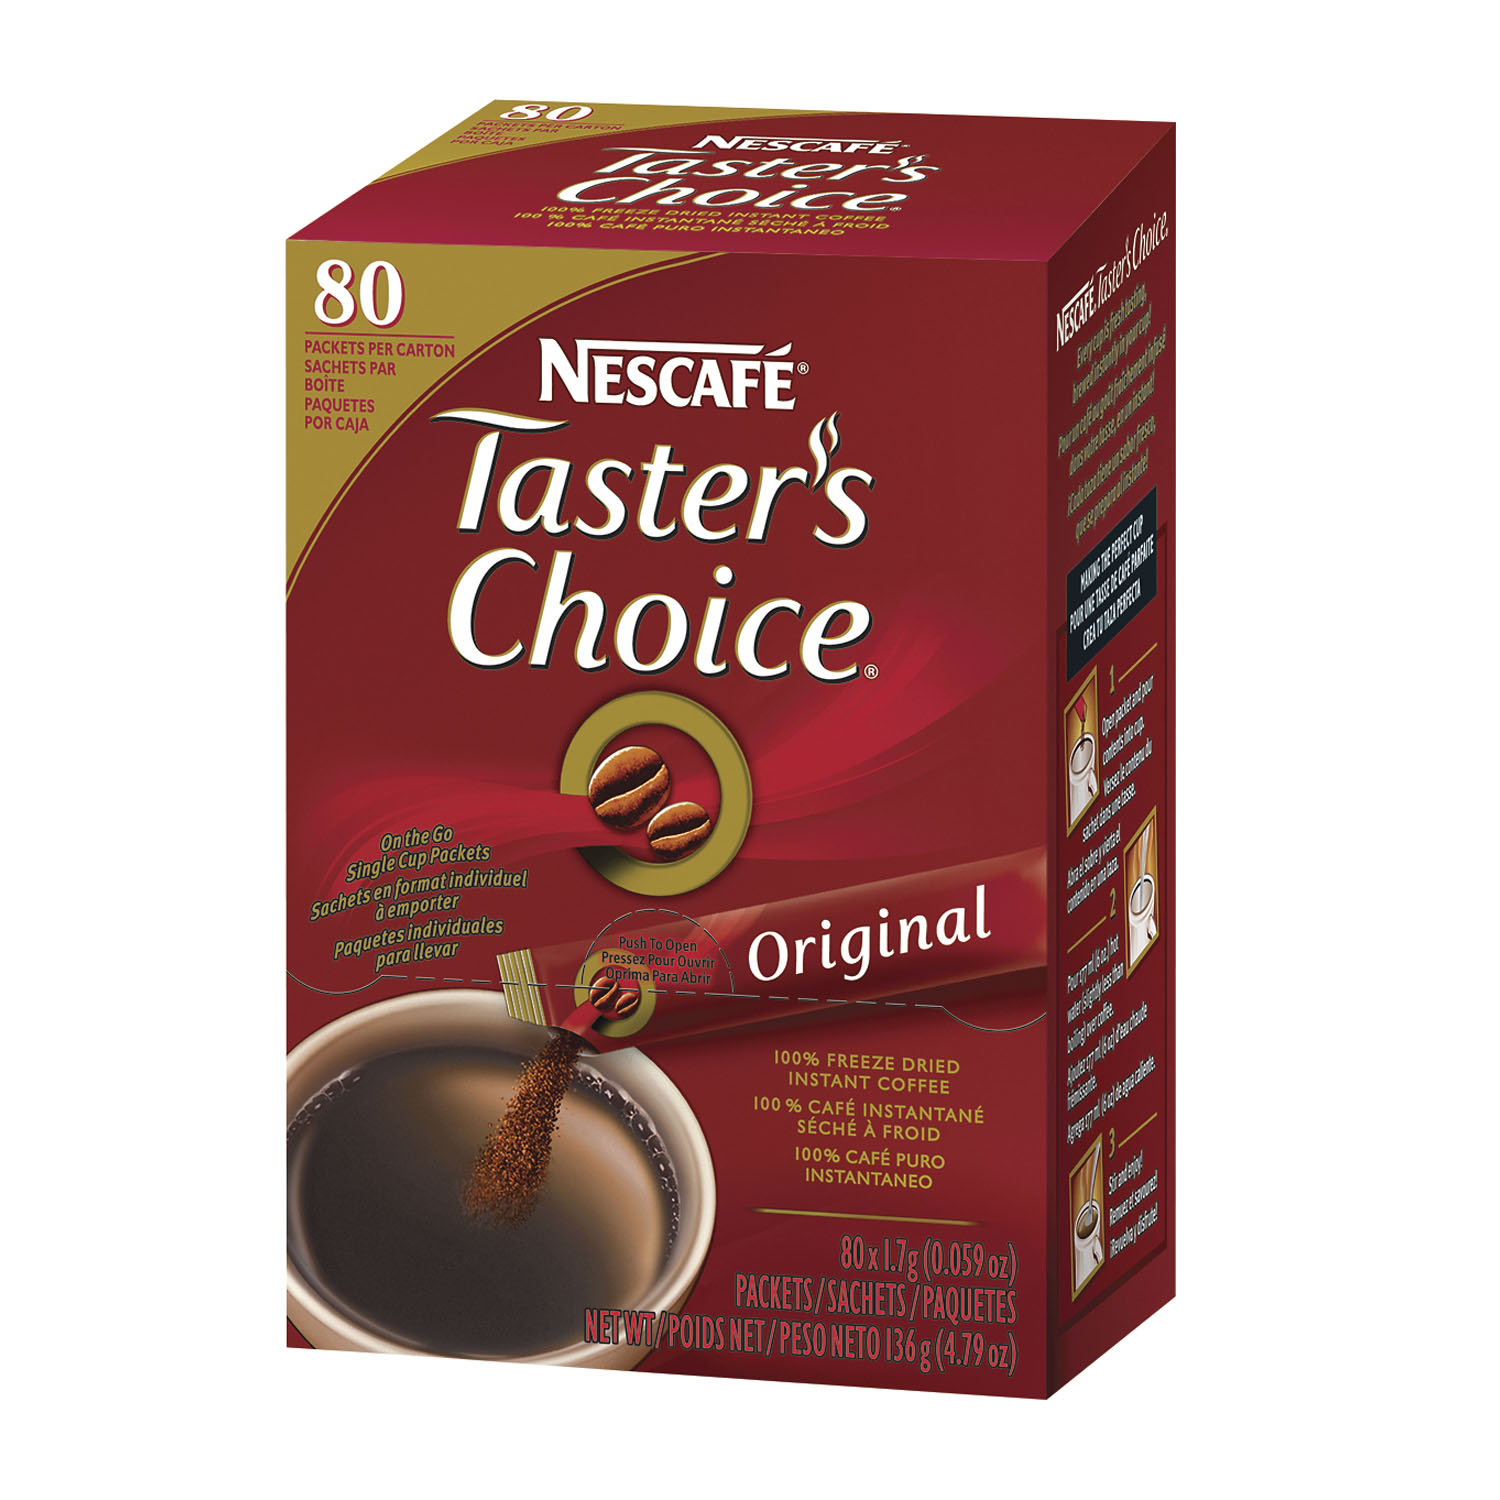 Nescafe Tasters Choice Original Instant Coffee 1.7G